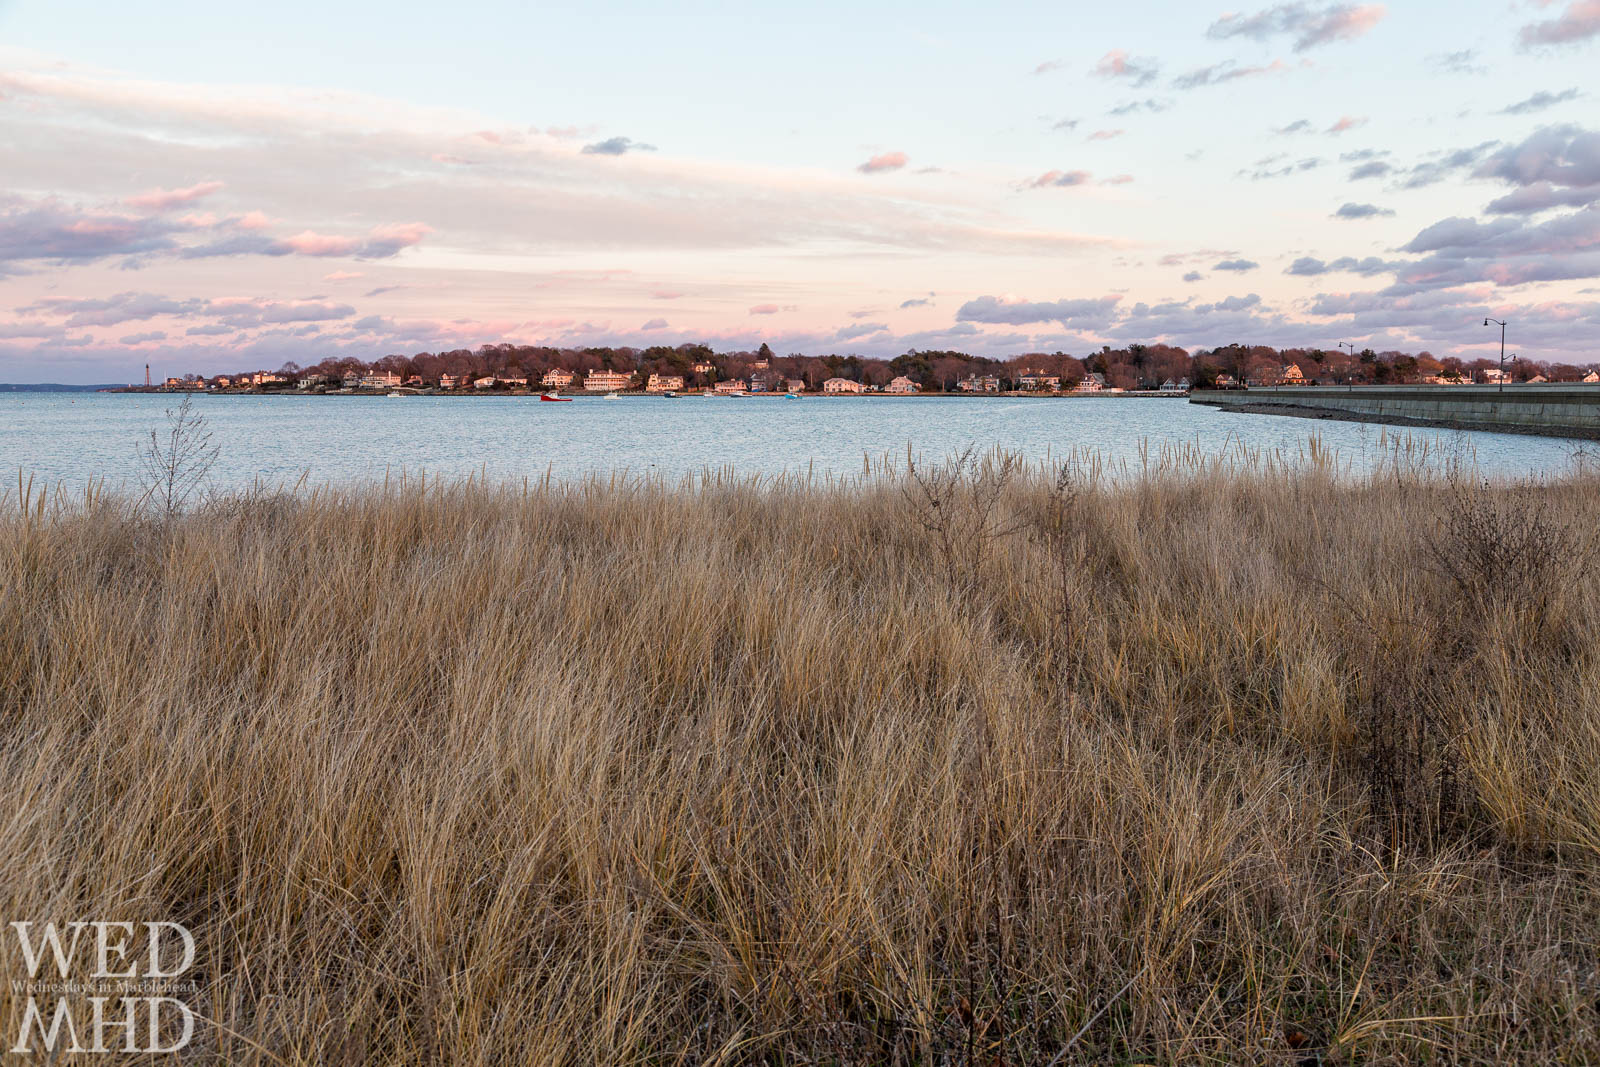 The dune grass grew thick on Riverhead Beach this Winter and made for a nice foreground in this sunset shot